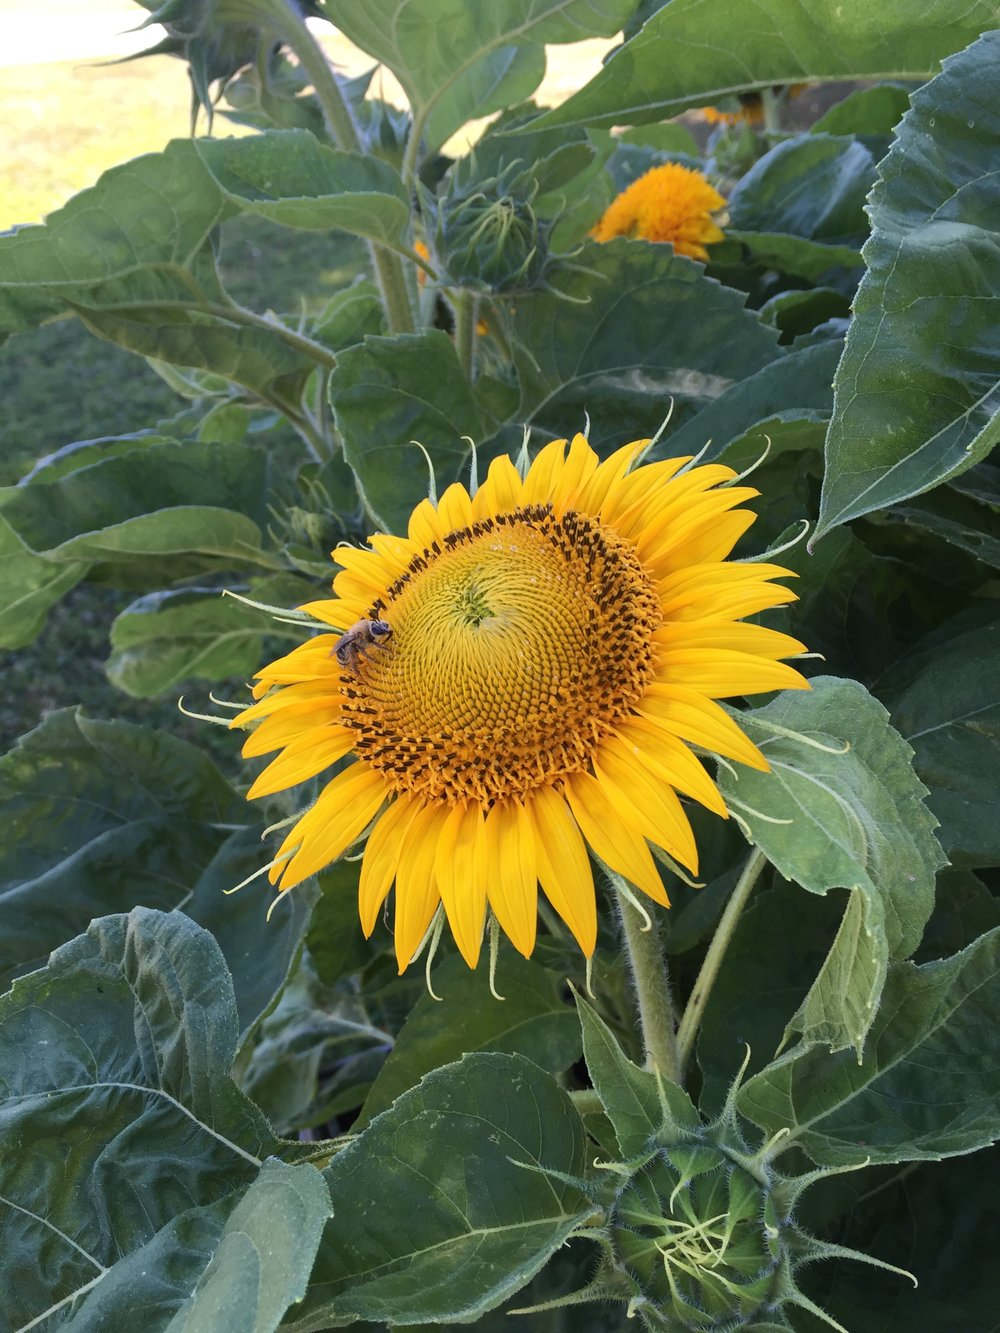 Honeybees on Sunflower